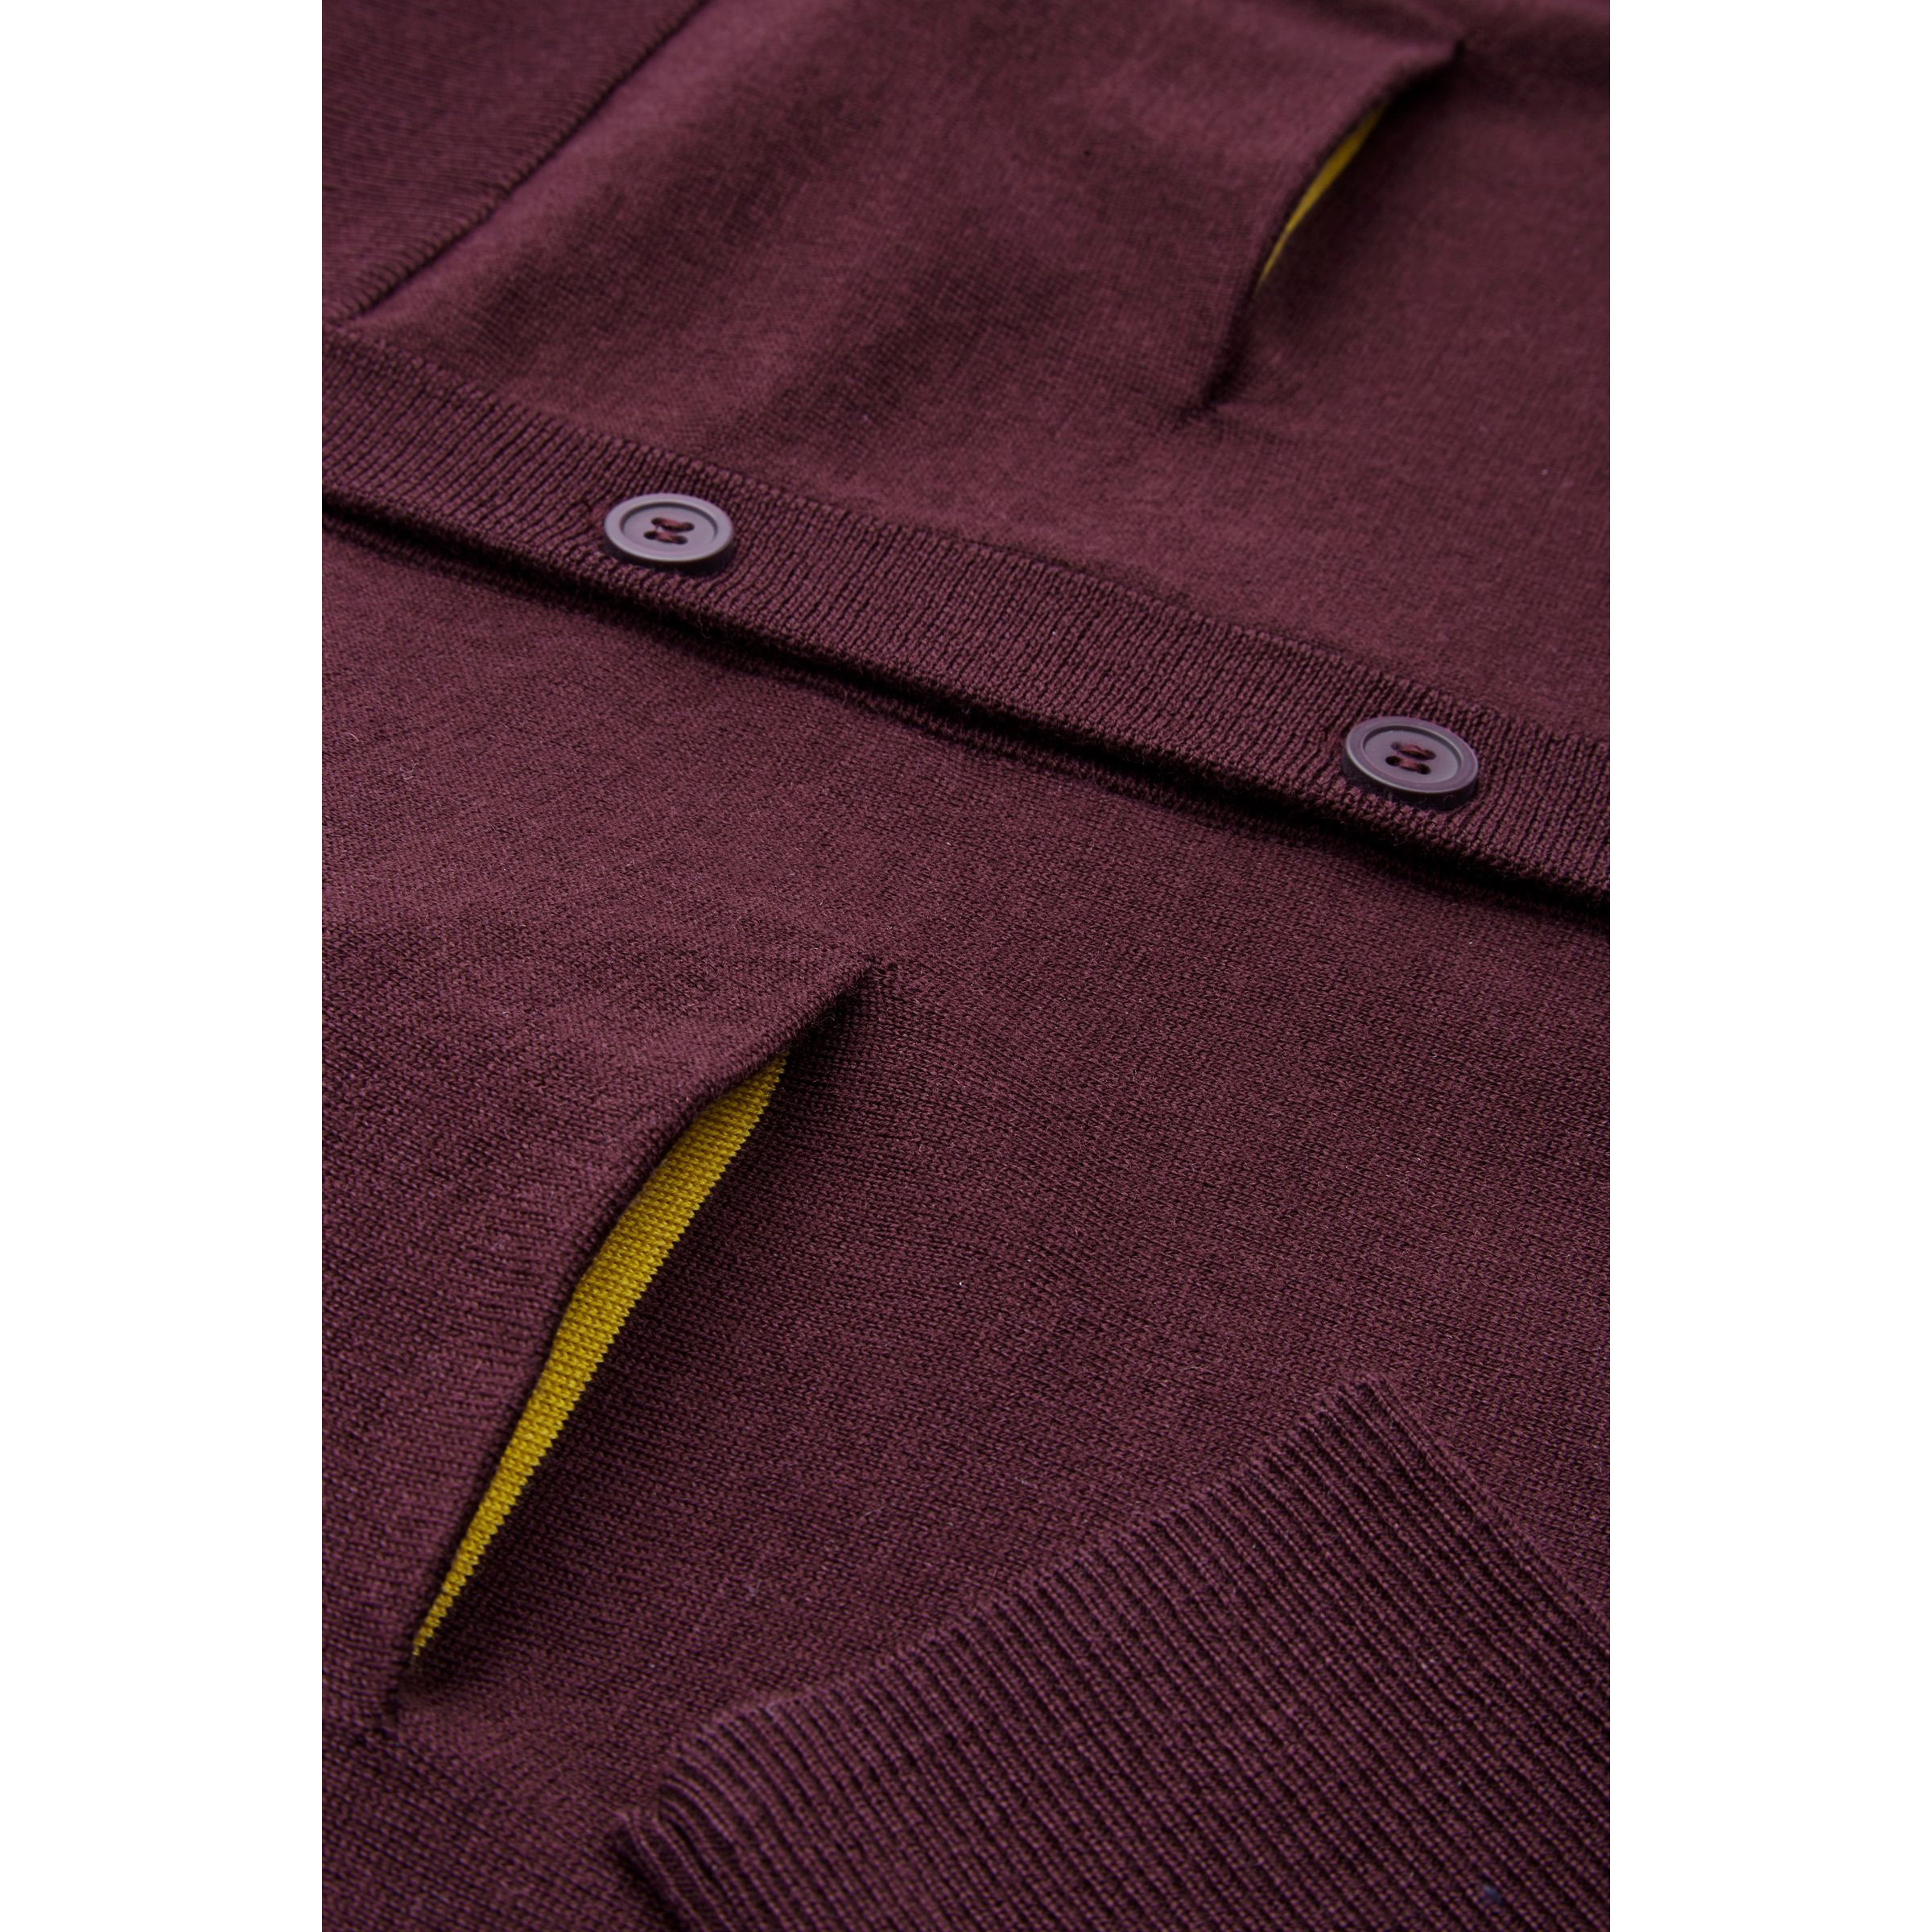 COS☆CARDIGAN WITH CONTRAST POCKETS / burgundy